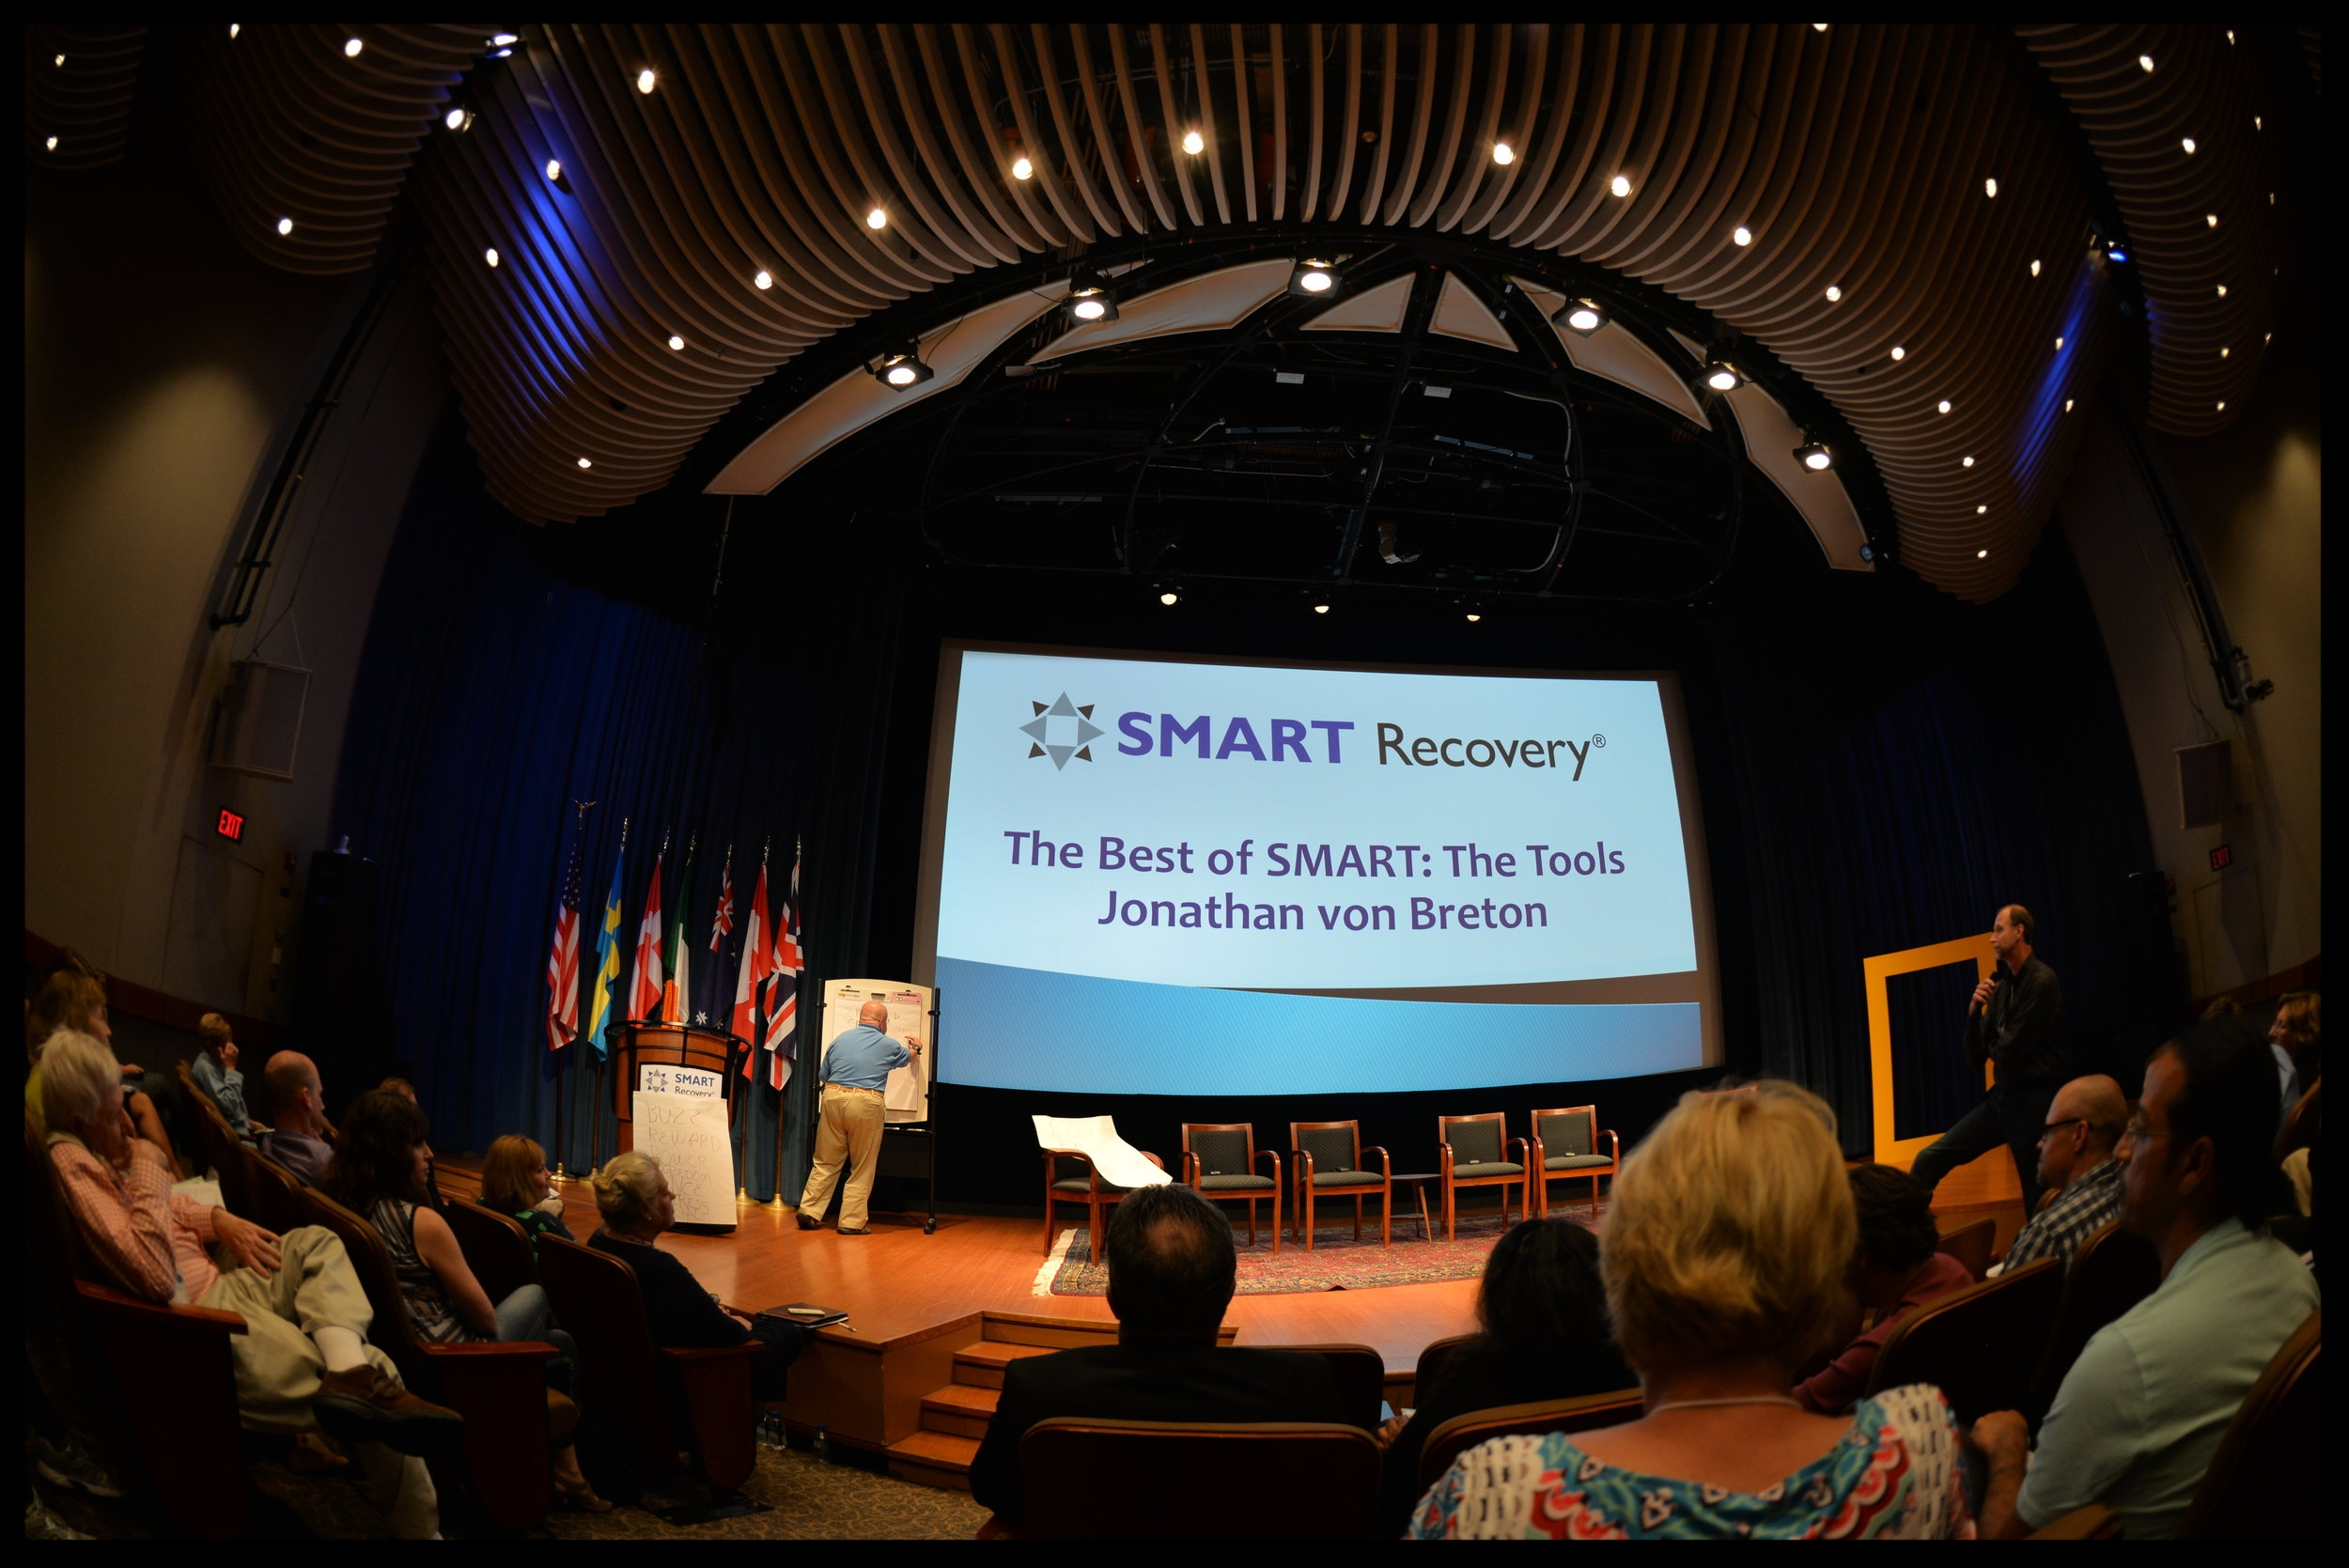 ACT Smart New York has no connection to SMART Recovery.   This photograph is simply being used as a good example of a very healthy and very large international recovery group's annual meeting, where people make good human connections and have fun together in person for 3 days each year, which is in addition to their online connections for the duration of the rest of the year, during which they have online meetings, message boards, safe monitored chat rooms, etc.   There ARE lots of things to do with your life in positive directions !  By the way, this group's website is SMARTRecovery.org.